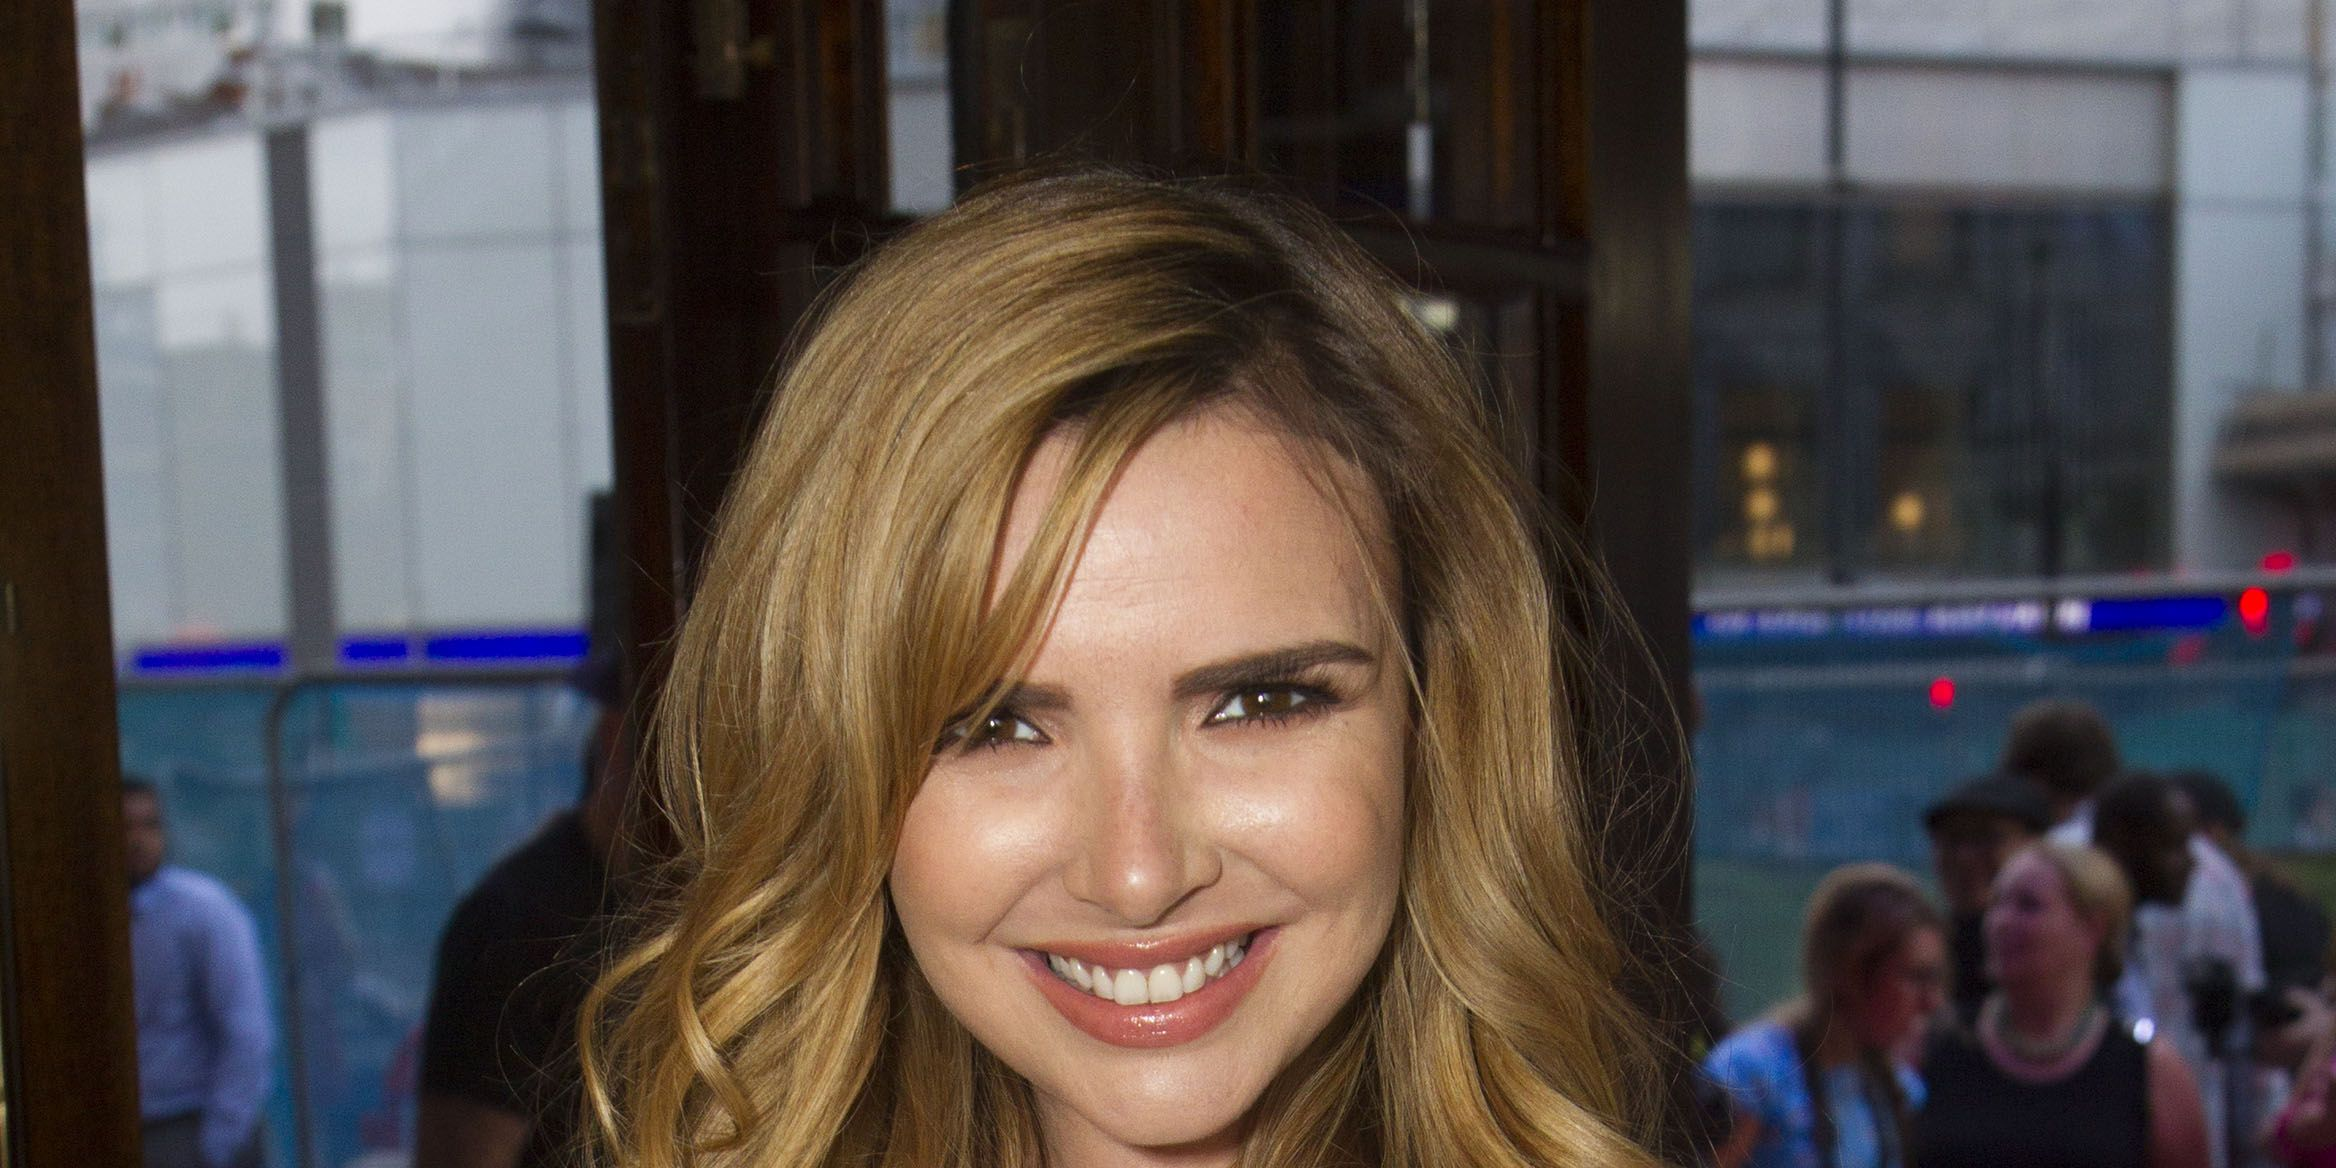 Nadine Coyle at The Bodyguard